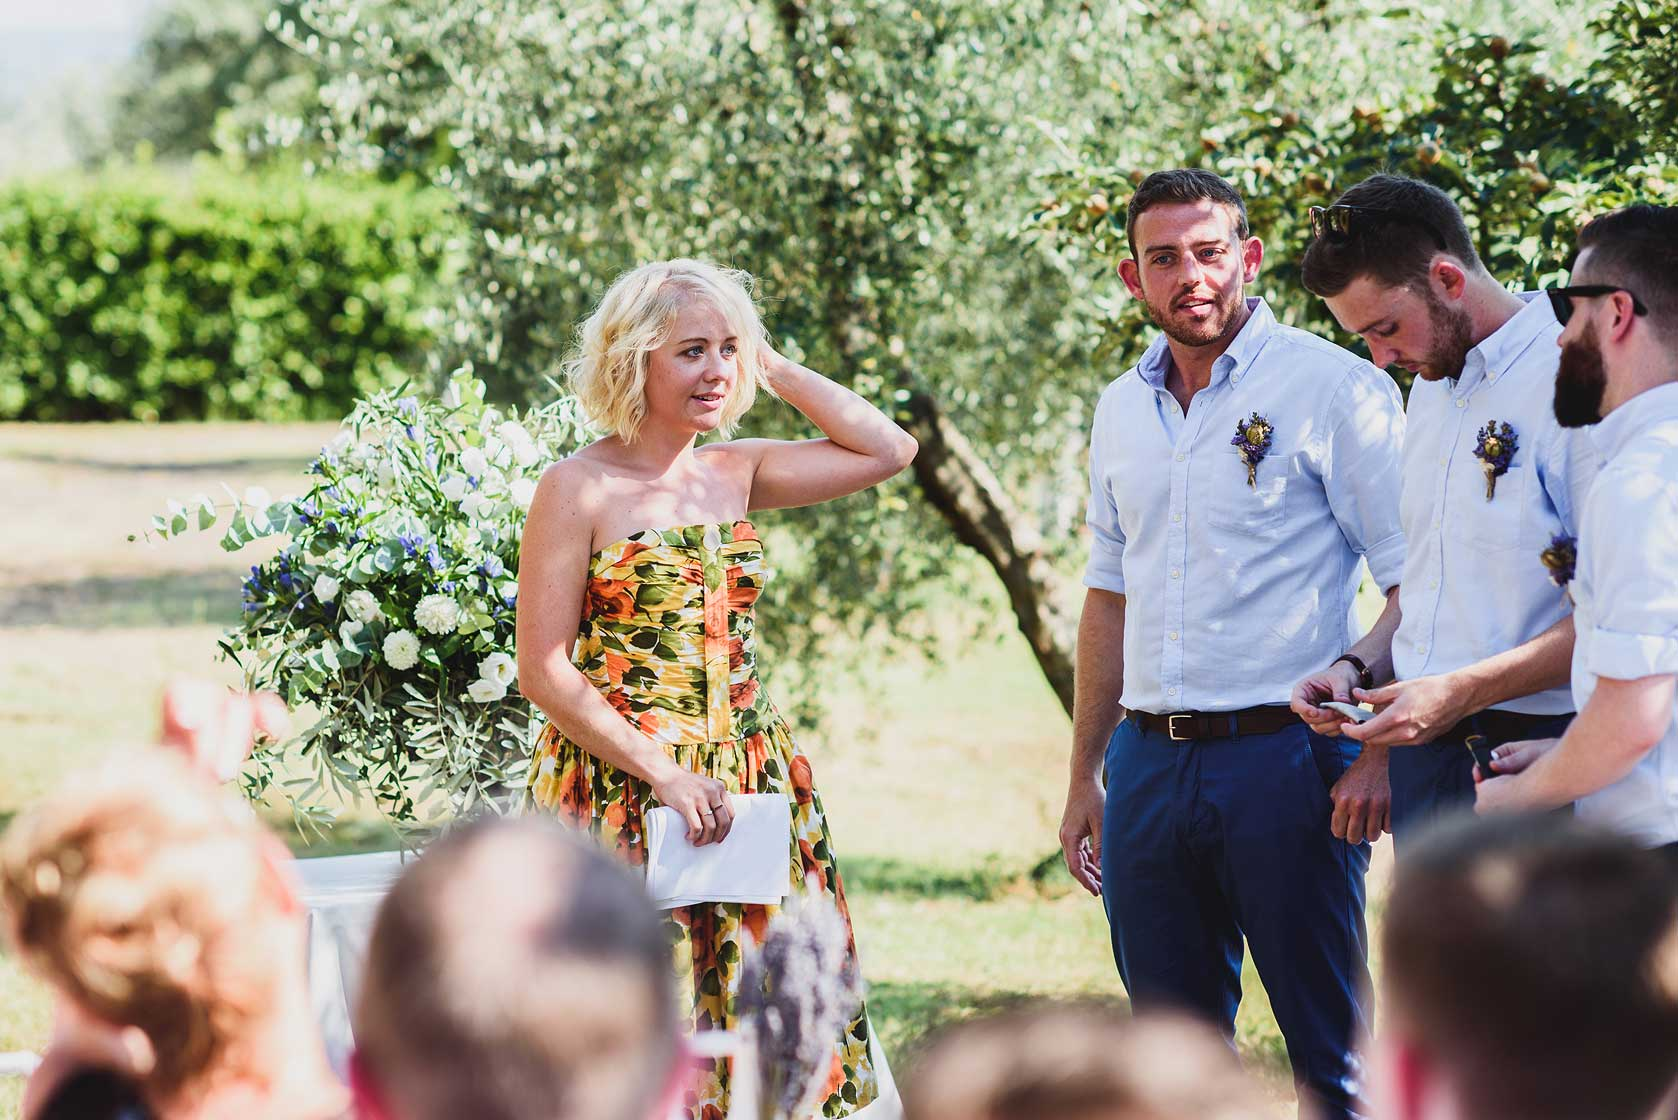 Destination wedding at Borgo Bucciano